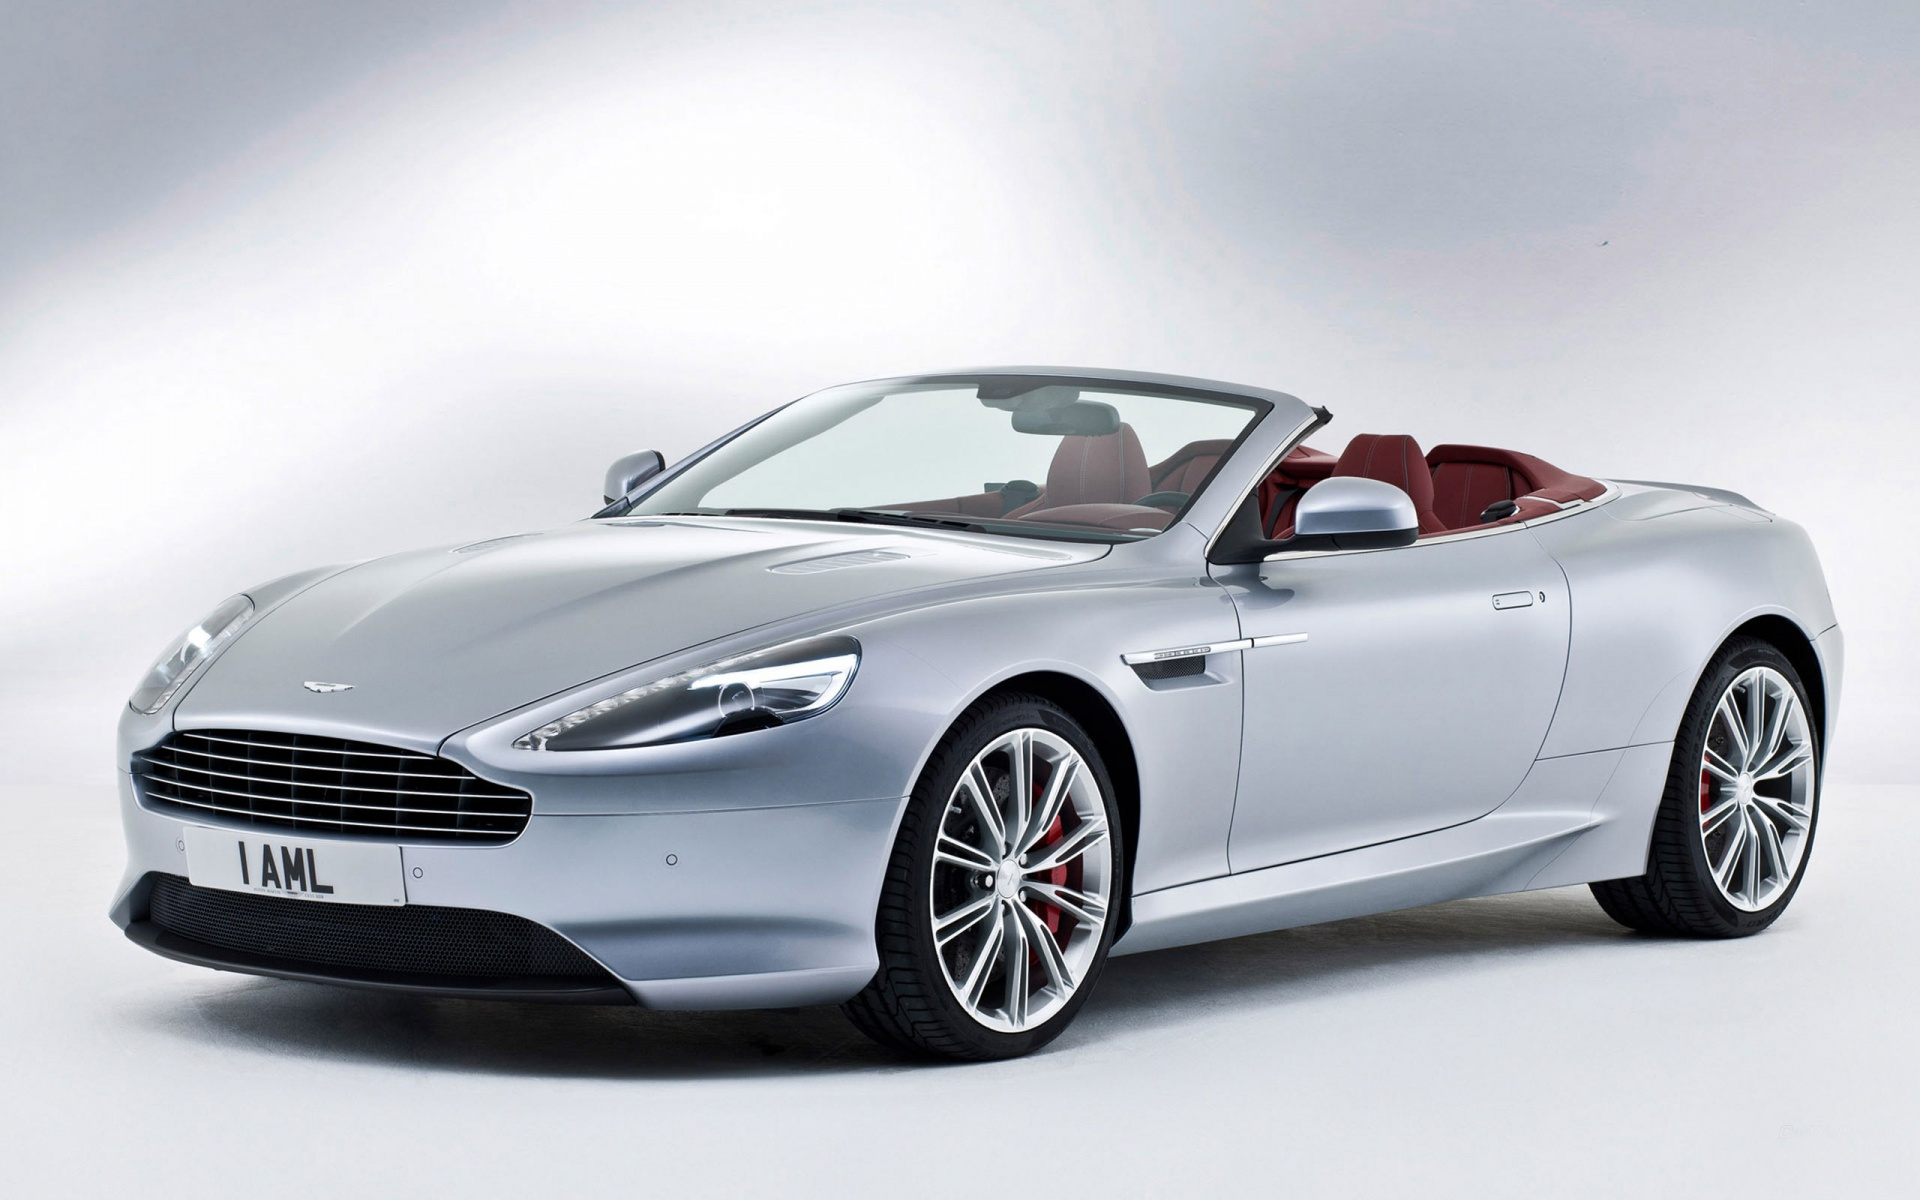 2013 Aston Martin DB9 Coupe Wallpaper HD Car Wallpapers 1920x1200